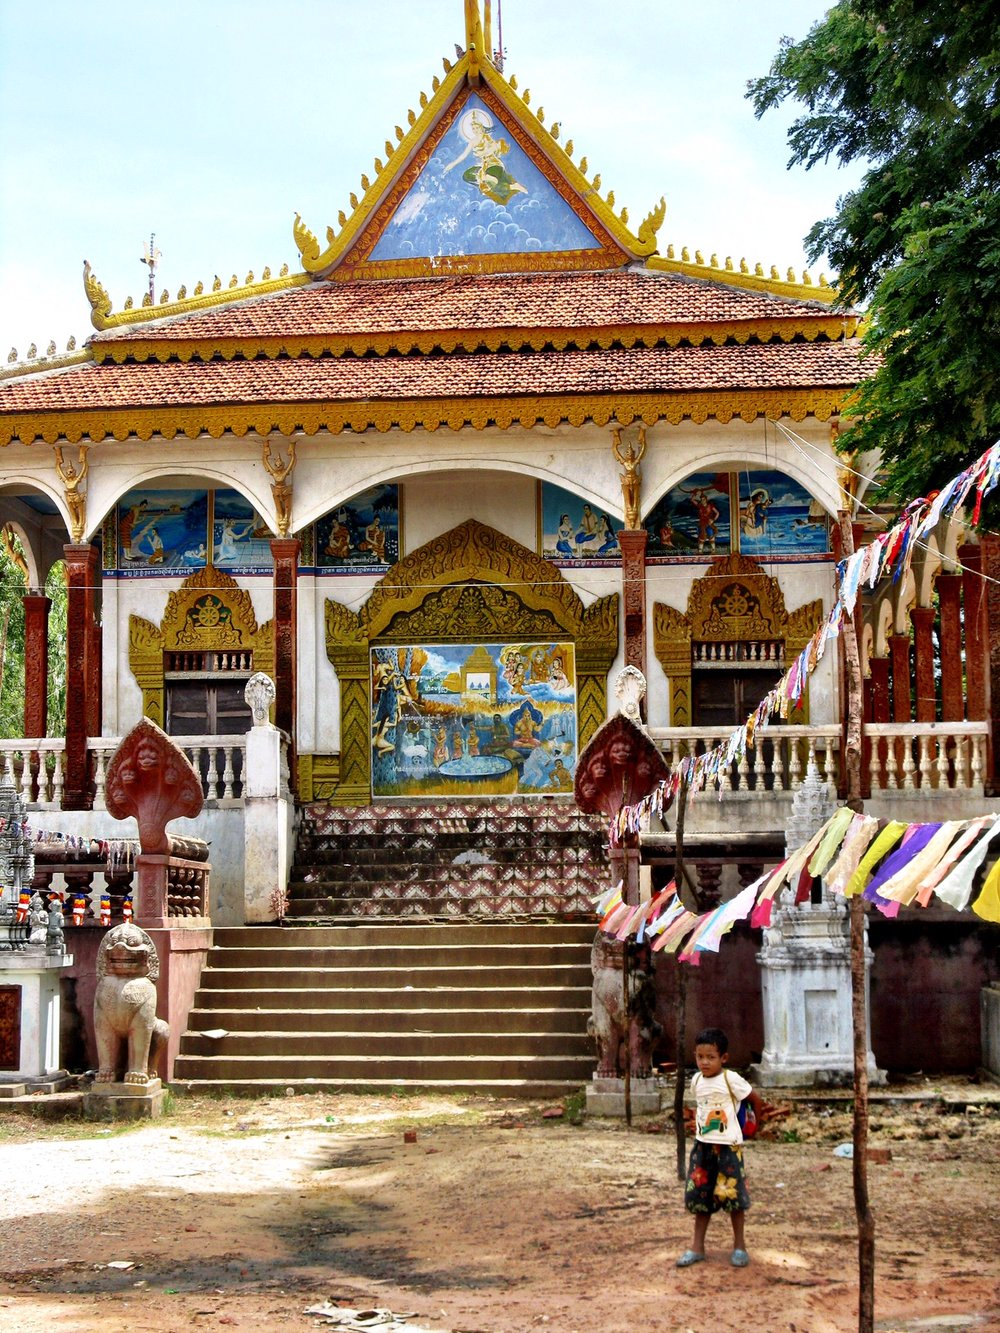 The main temple of Kompong Khleang